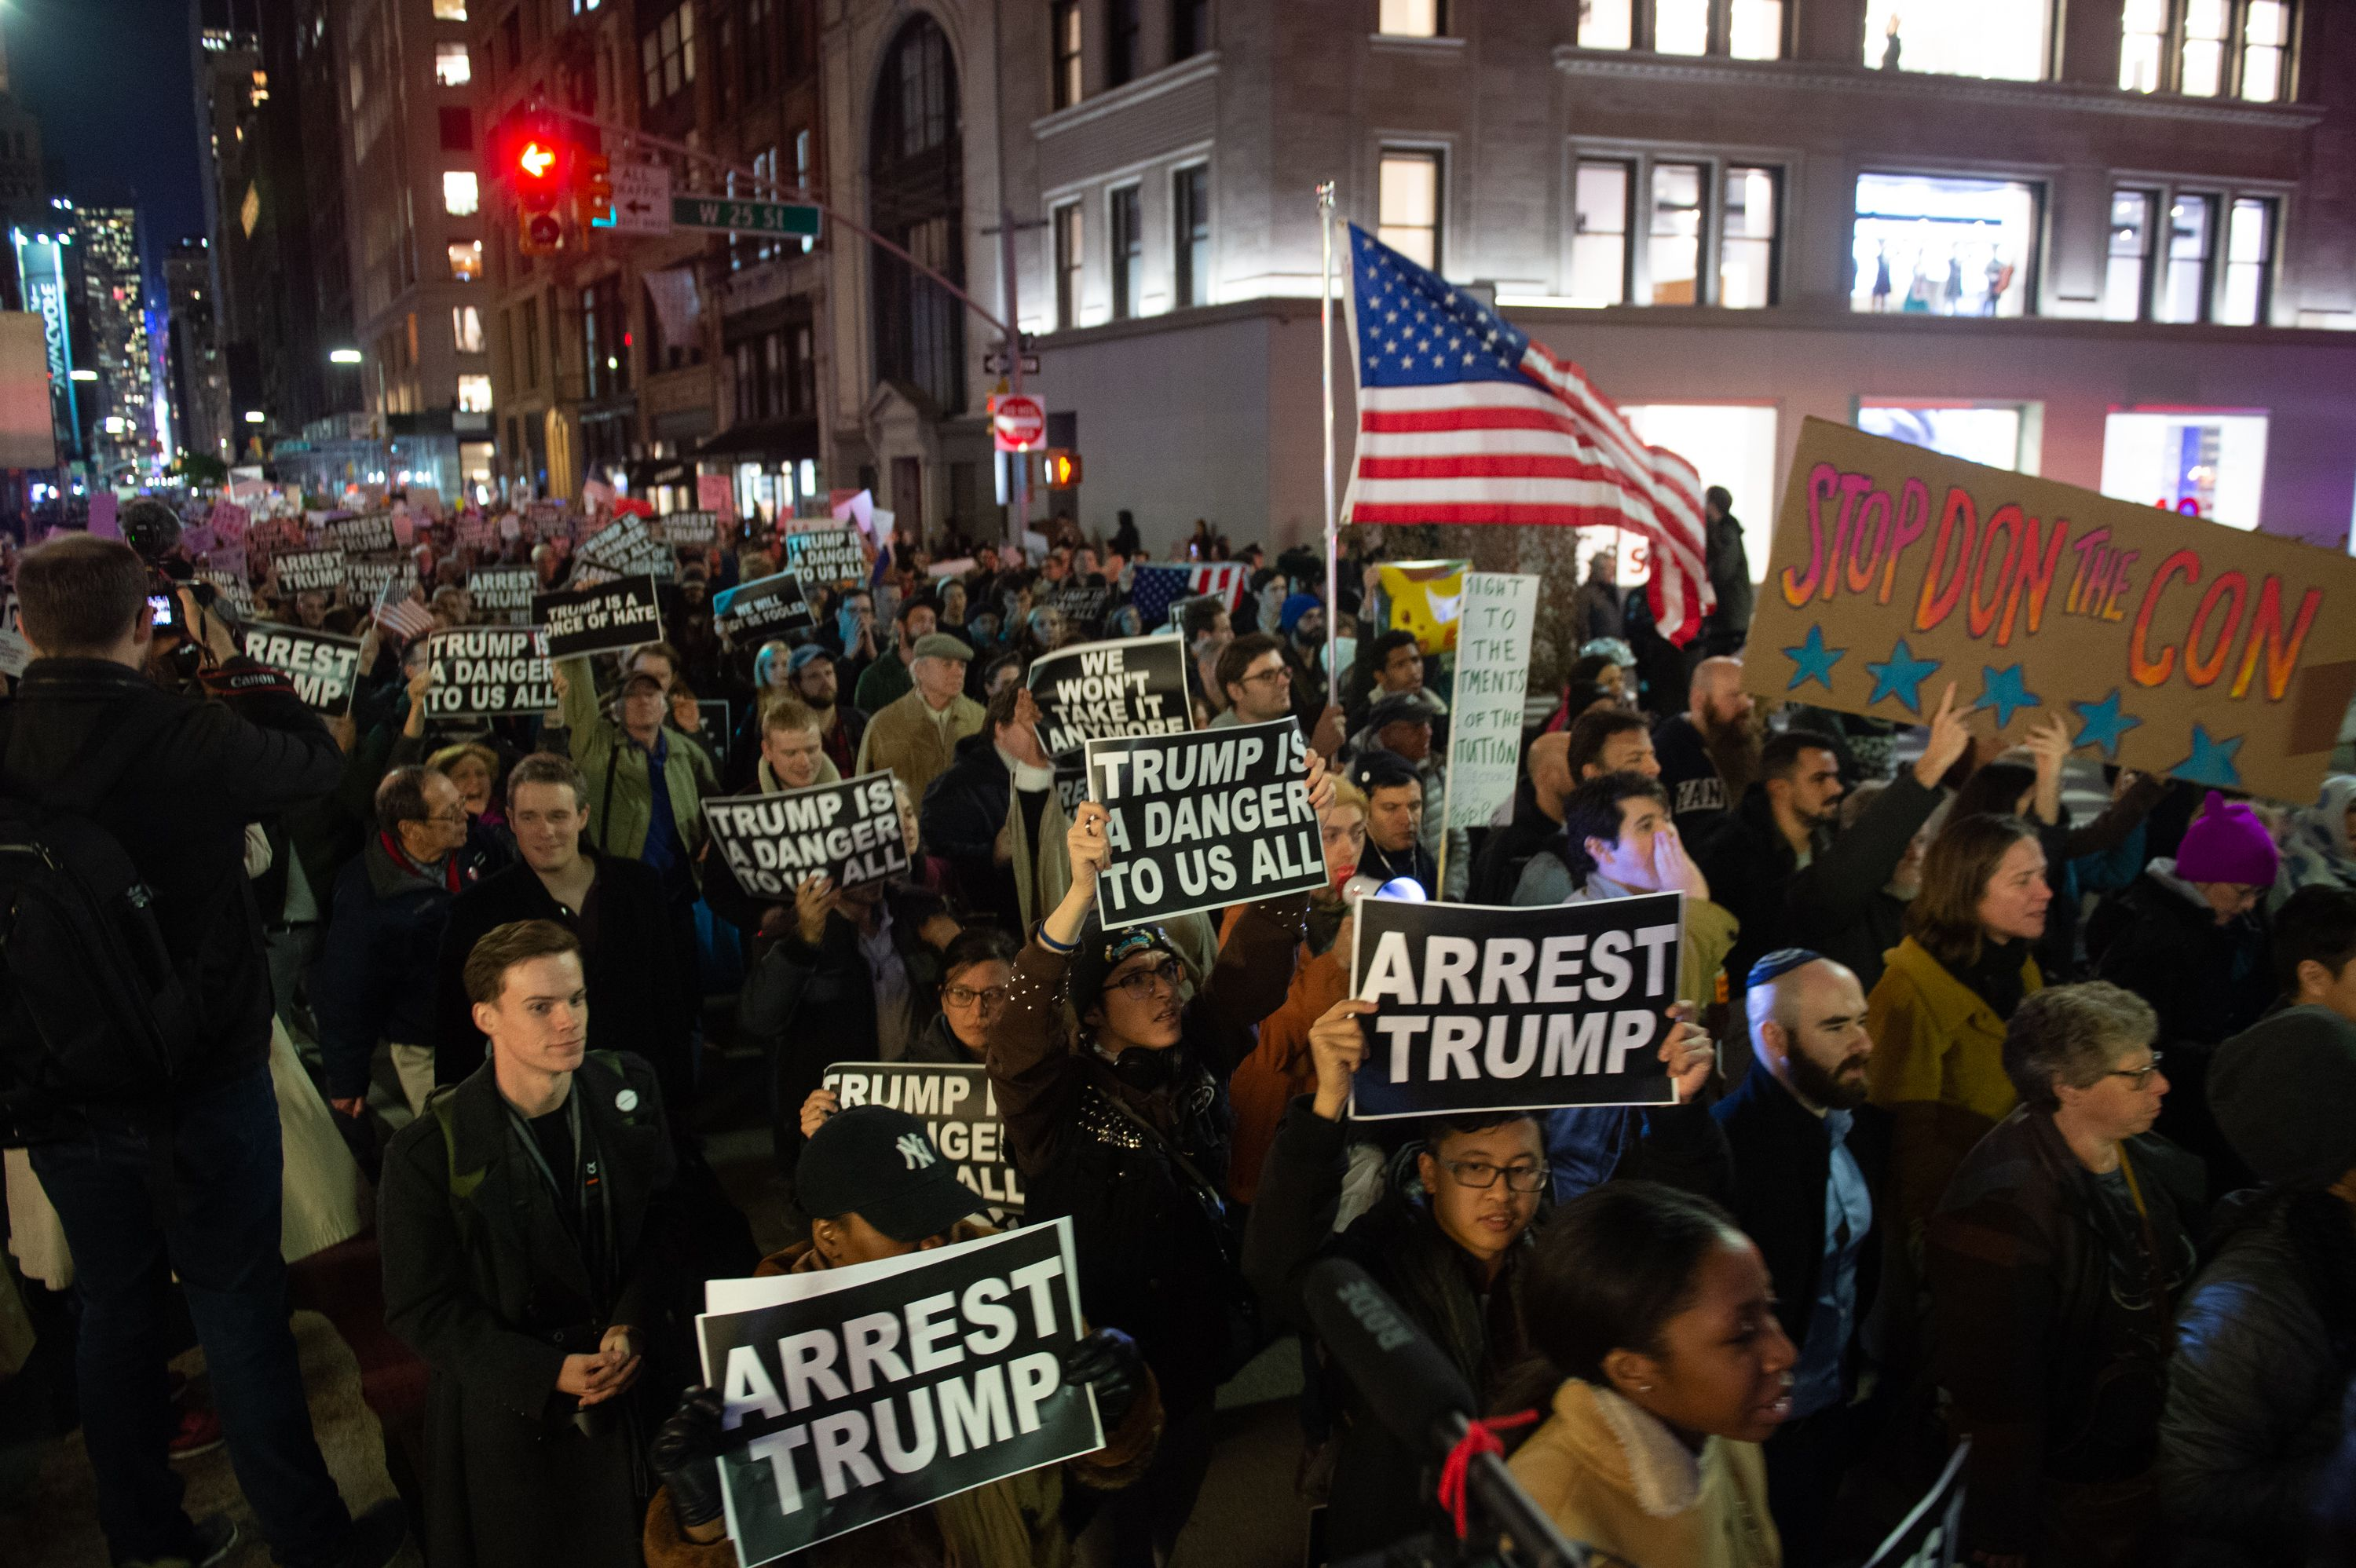 People protest and march against US President Donald Trump's alleged interference in Robert Mueller's investigation in New York City on November 8, 2018. - President Donald Trump was accused on November 8, 2018, of pushing America toward a constitutional crisis after his firing of the attorney general cast doubt over the future of an explosive probe into election collusion with Russian agents. (Photo by Bryan R. Smith / AFP) (Photo credit should read BRYAN R. SMITH/AFP/Getty Images)